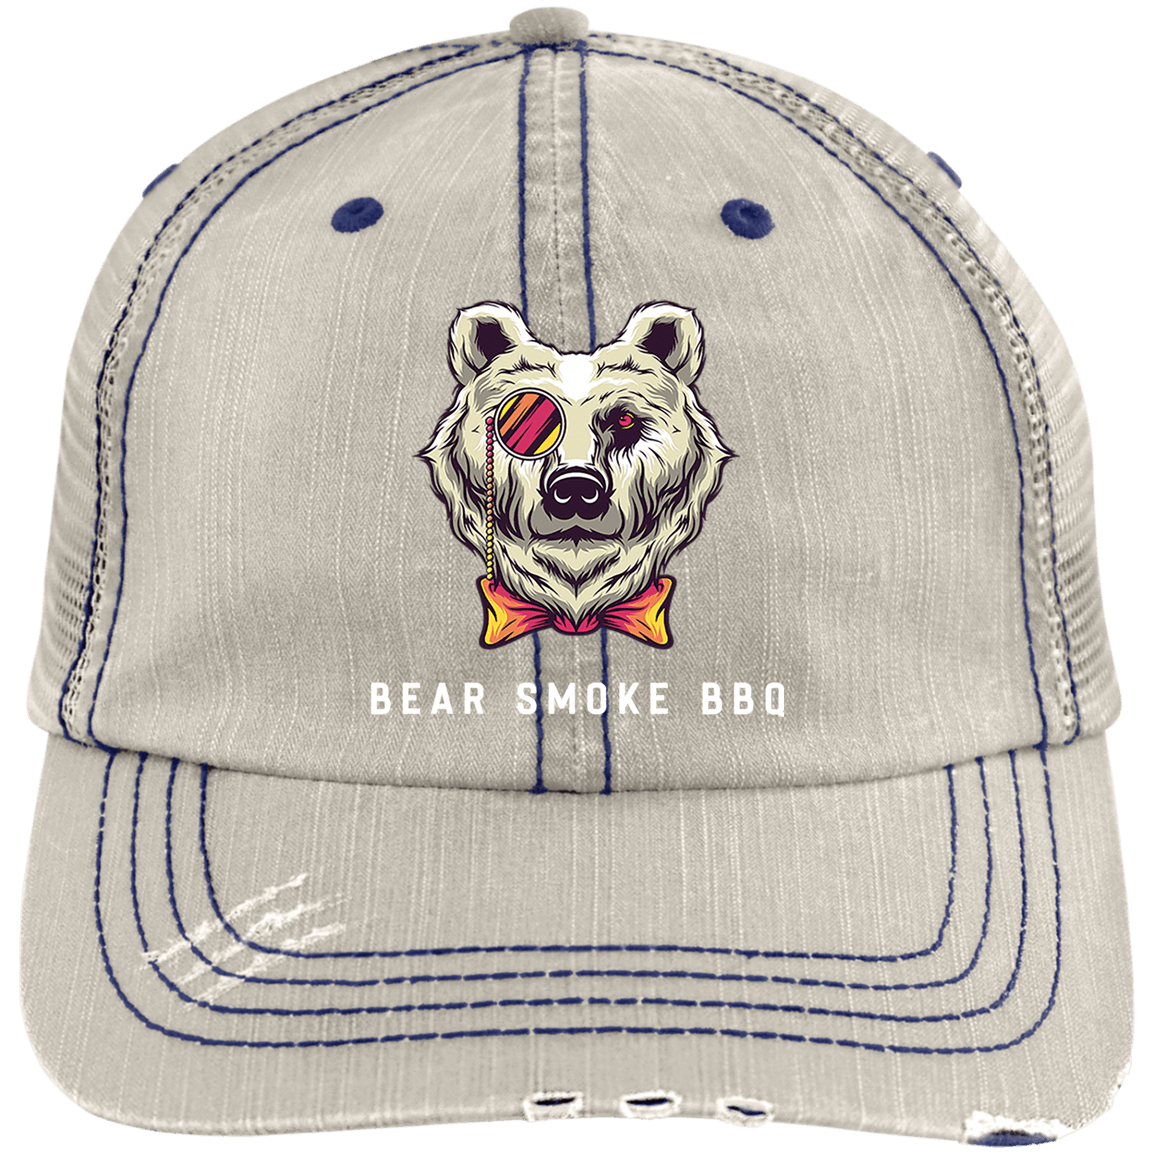 Bear Smoke Distressed Unstructured Trucker Cap - Bear Smoke BBQ